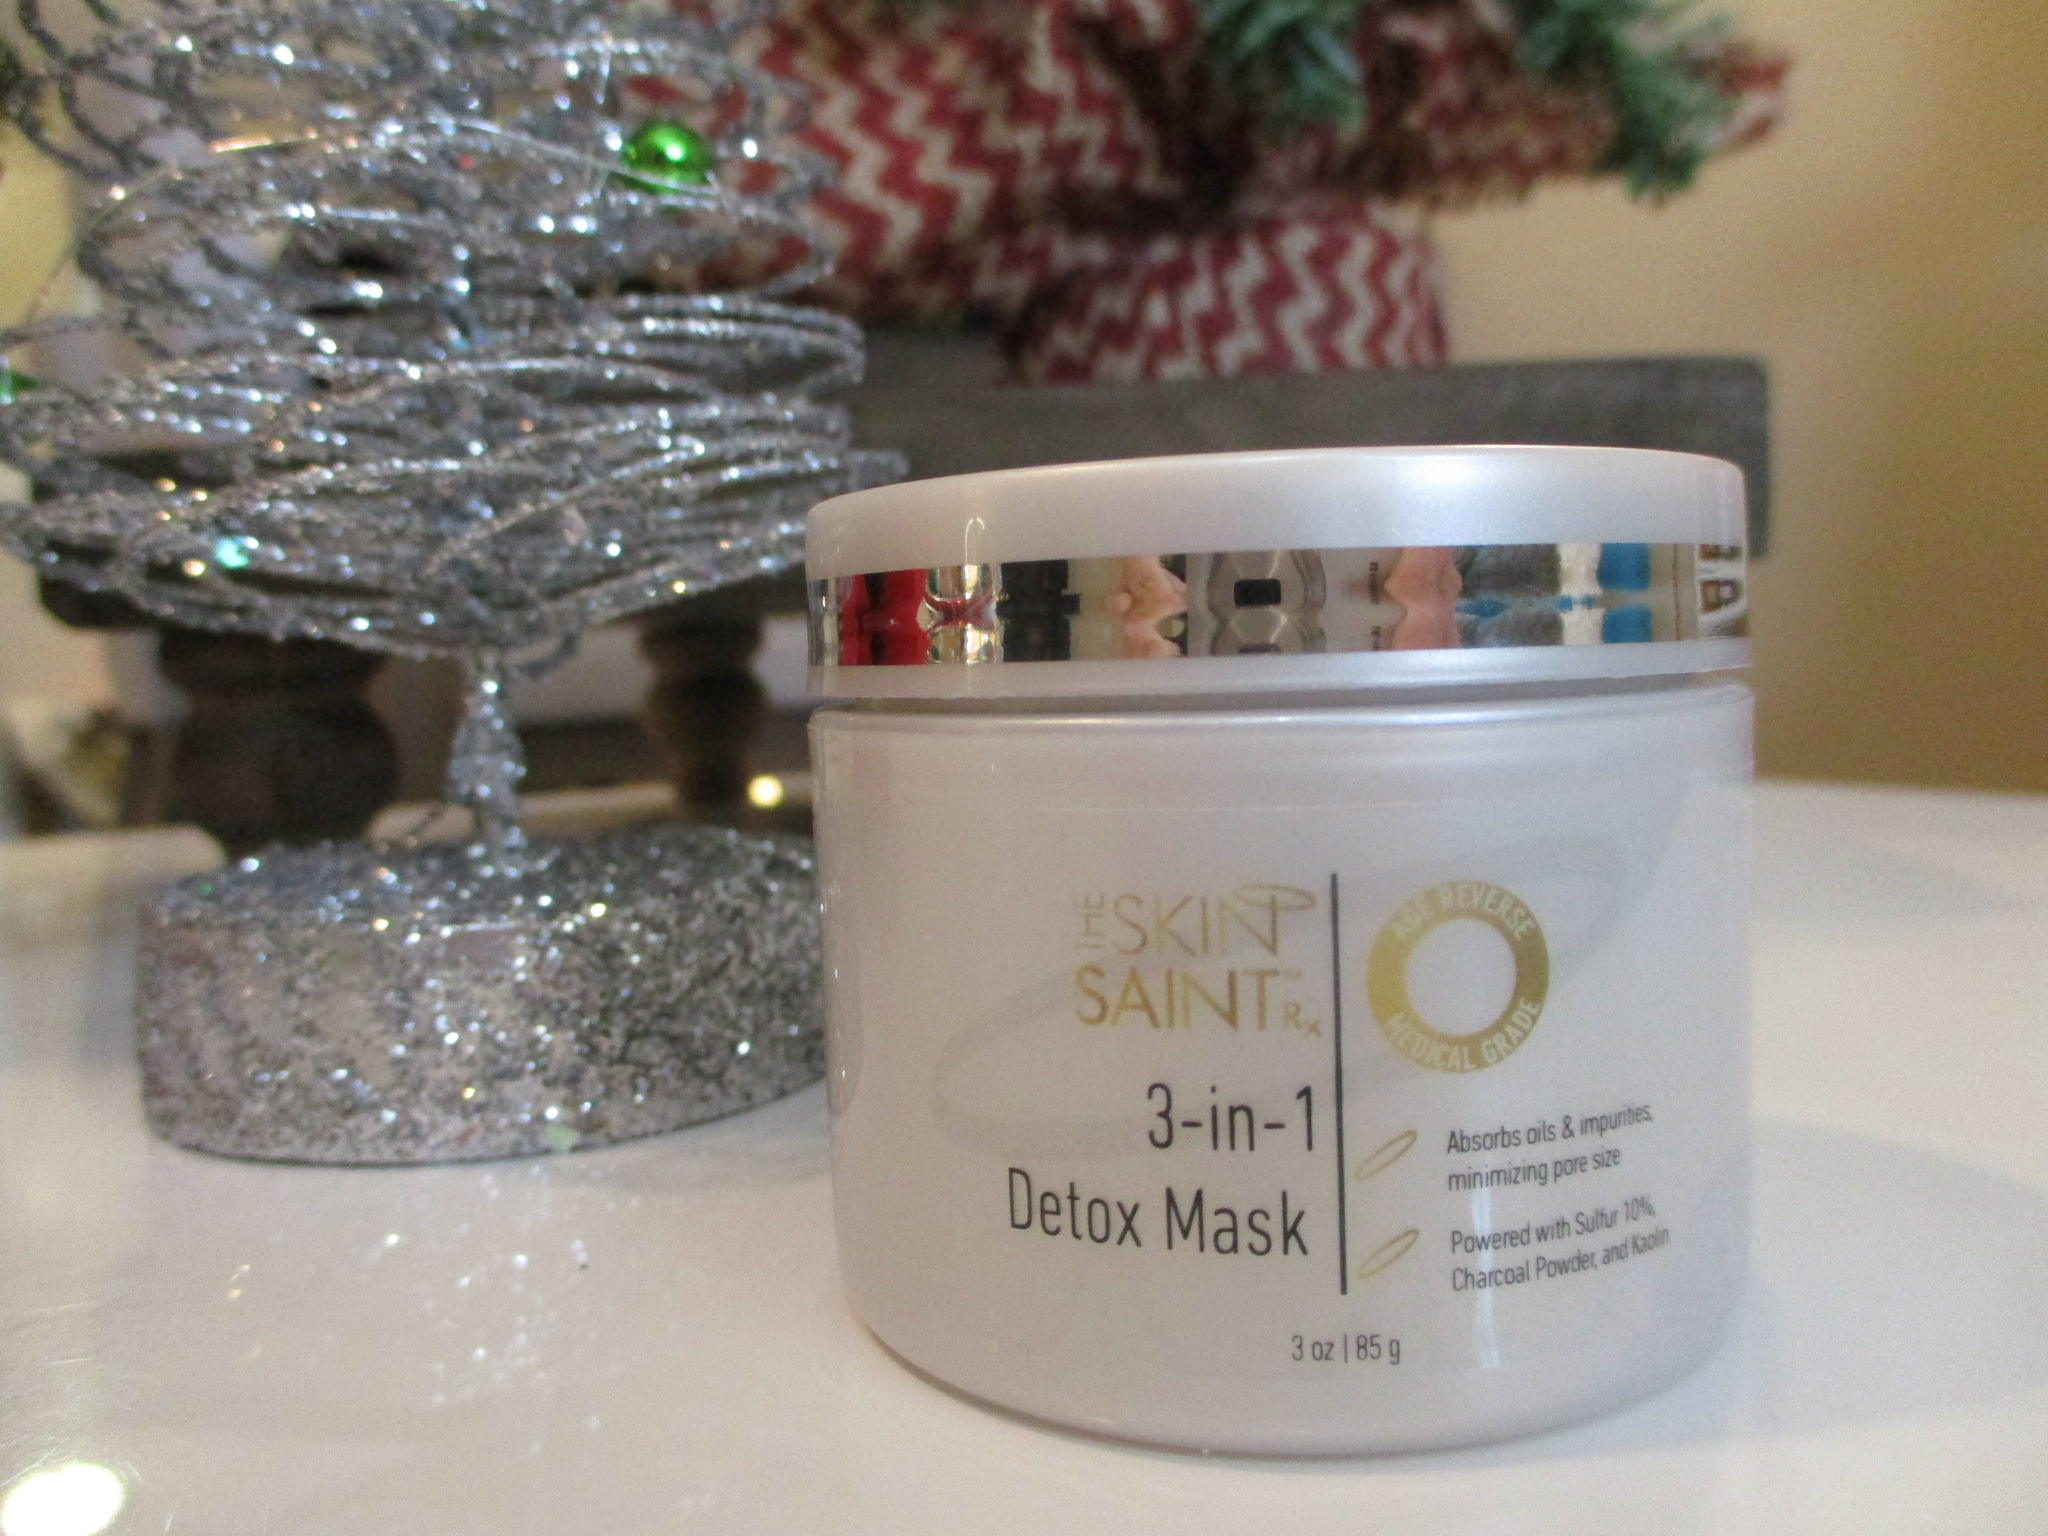 3 in 1 Detox Mask for Acne Sufferers